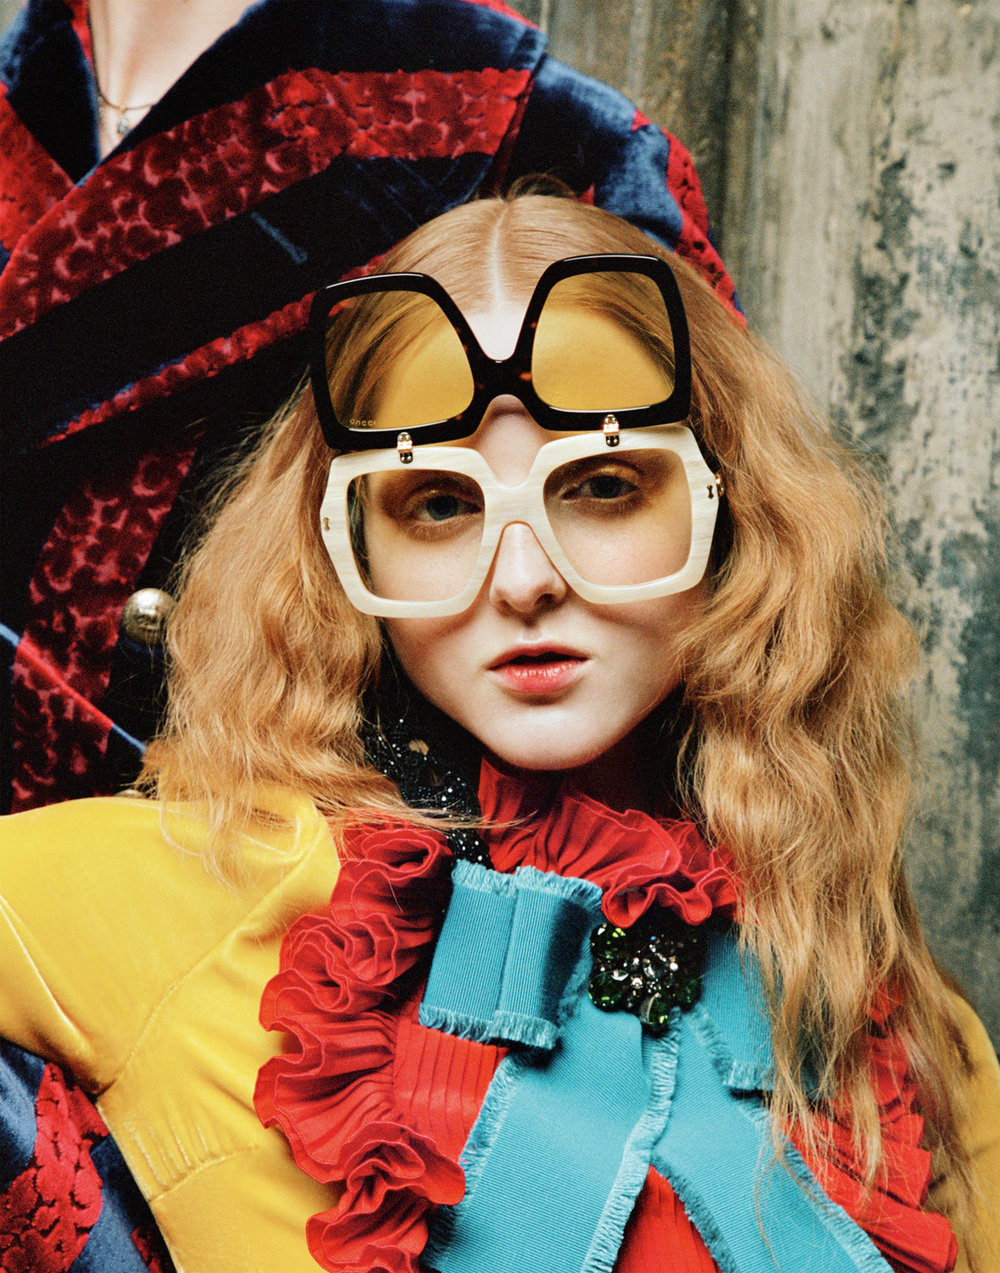 GUCCI FOR INTERVIEW RUSSIA